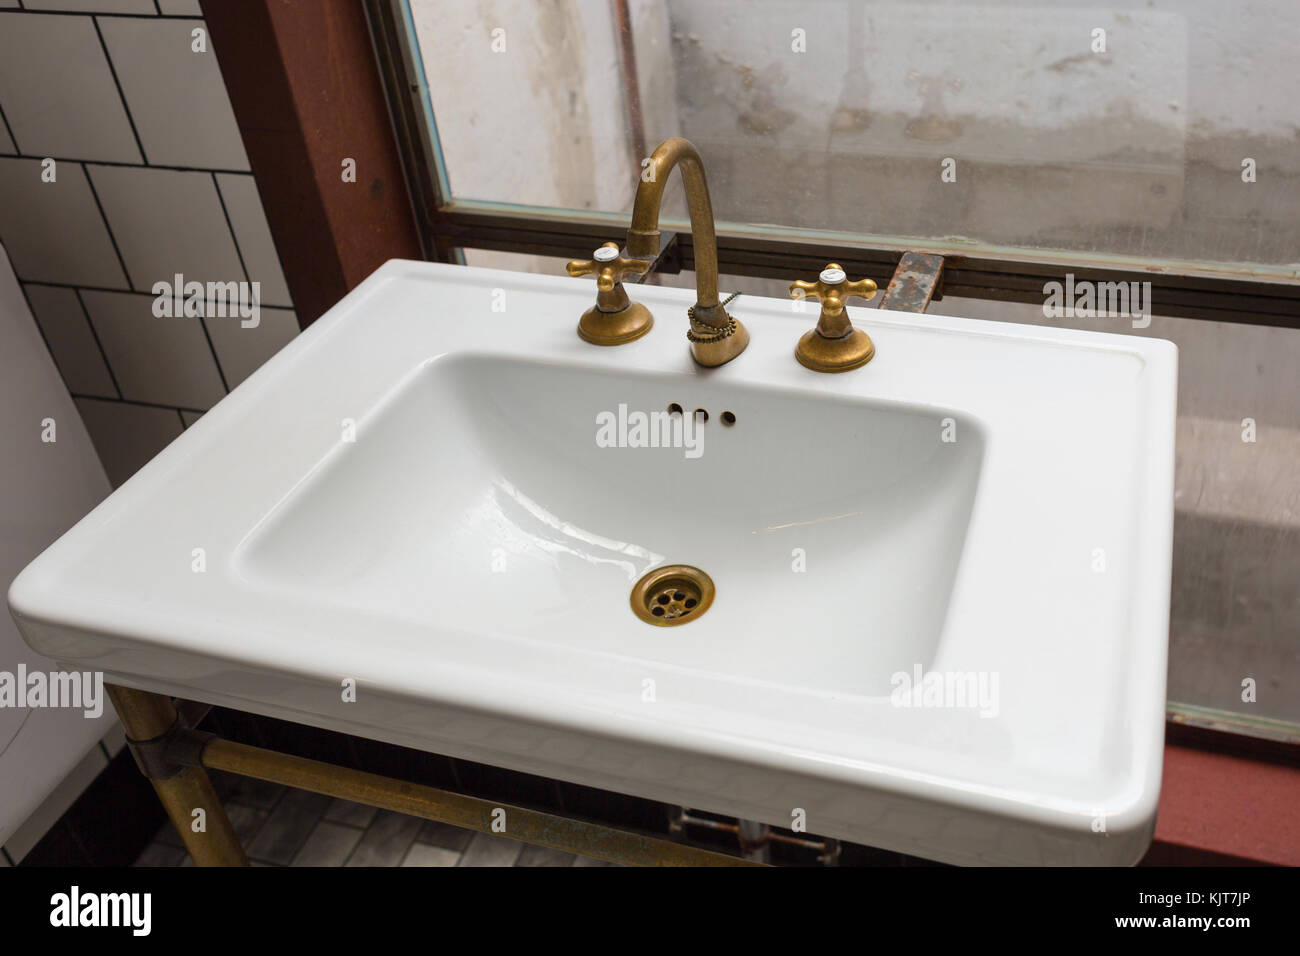 A vintage sink with golden separate tap and faucet Stock Photo ...